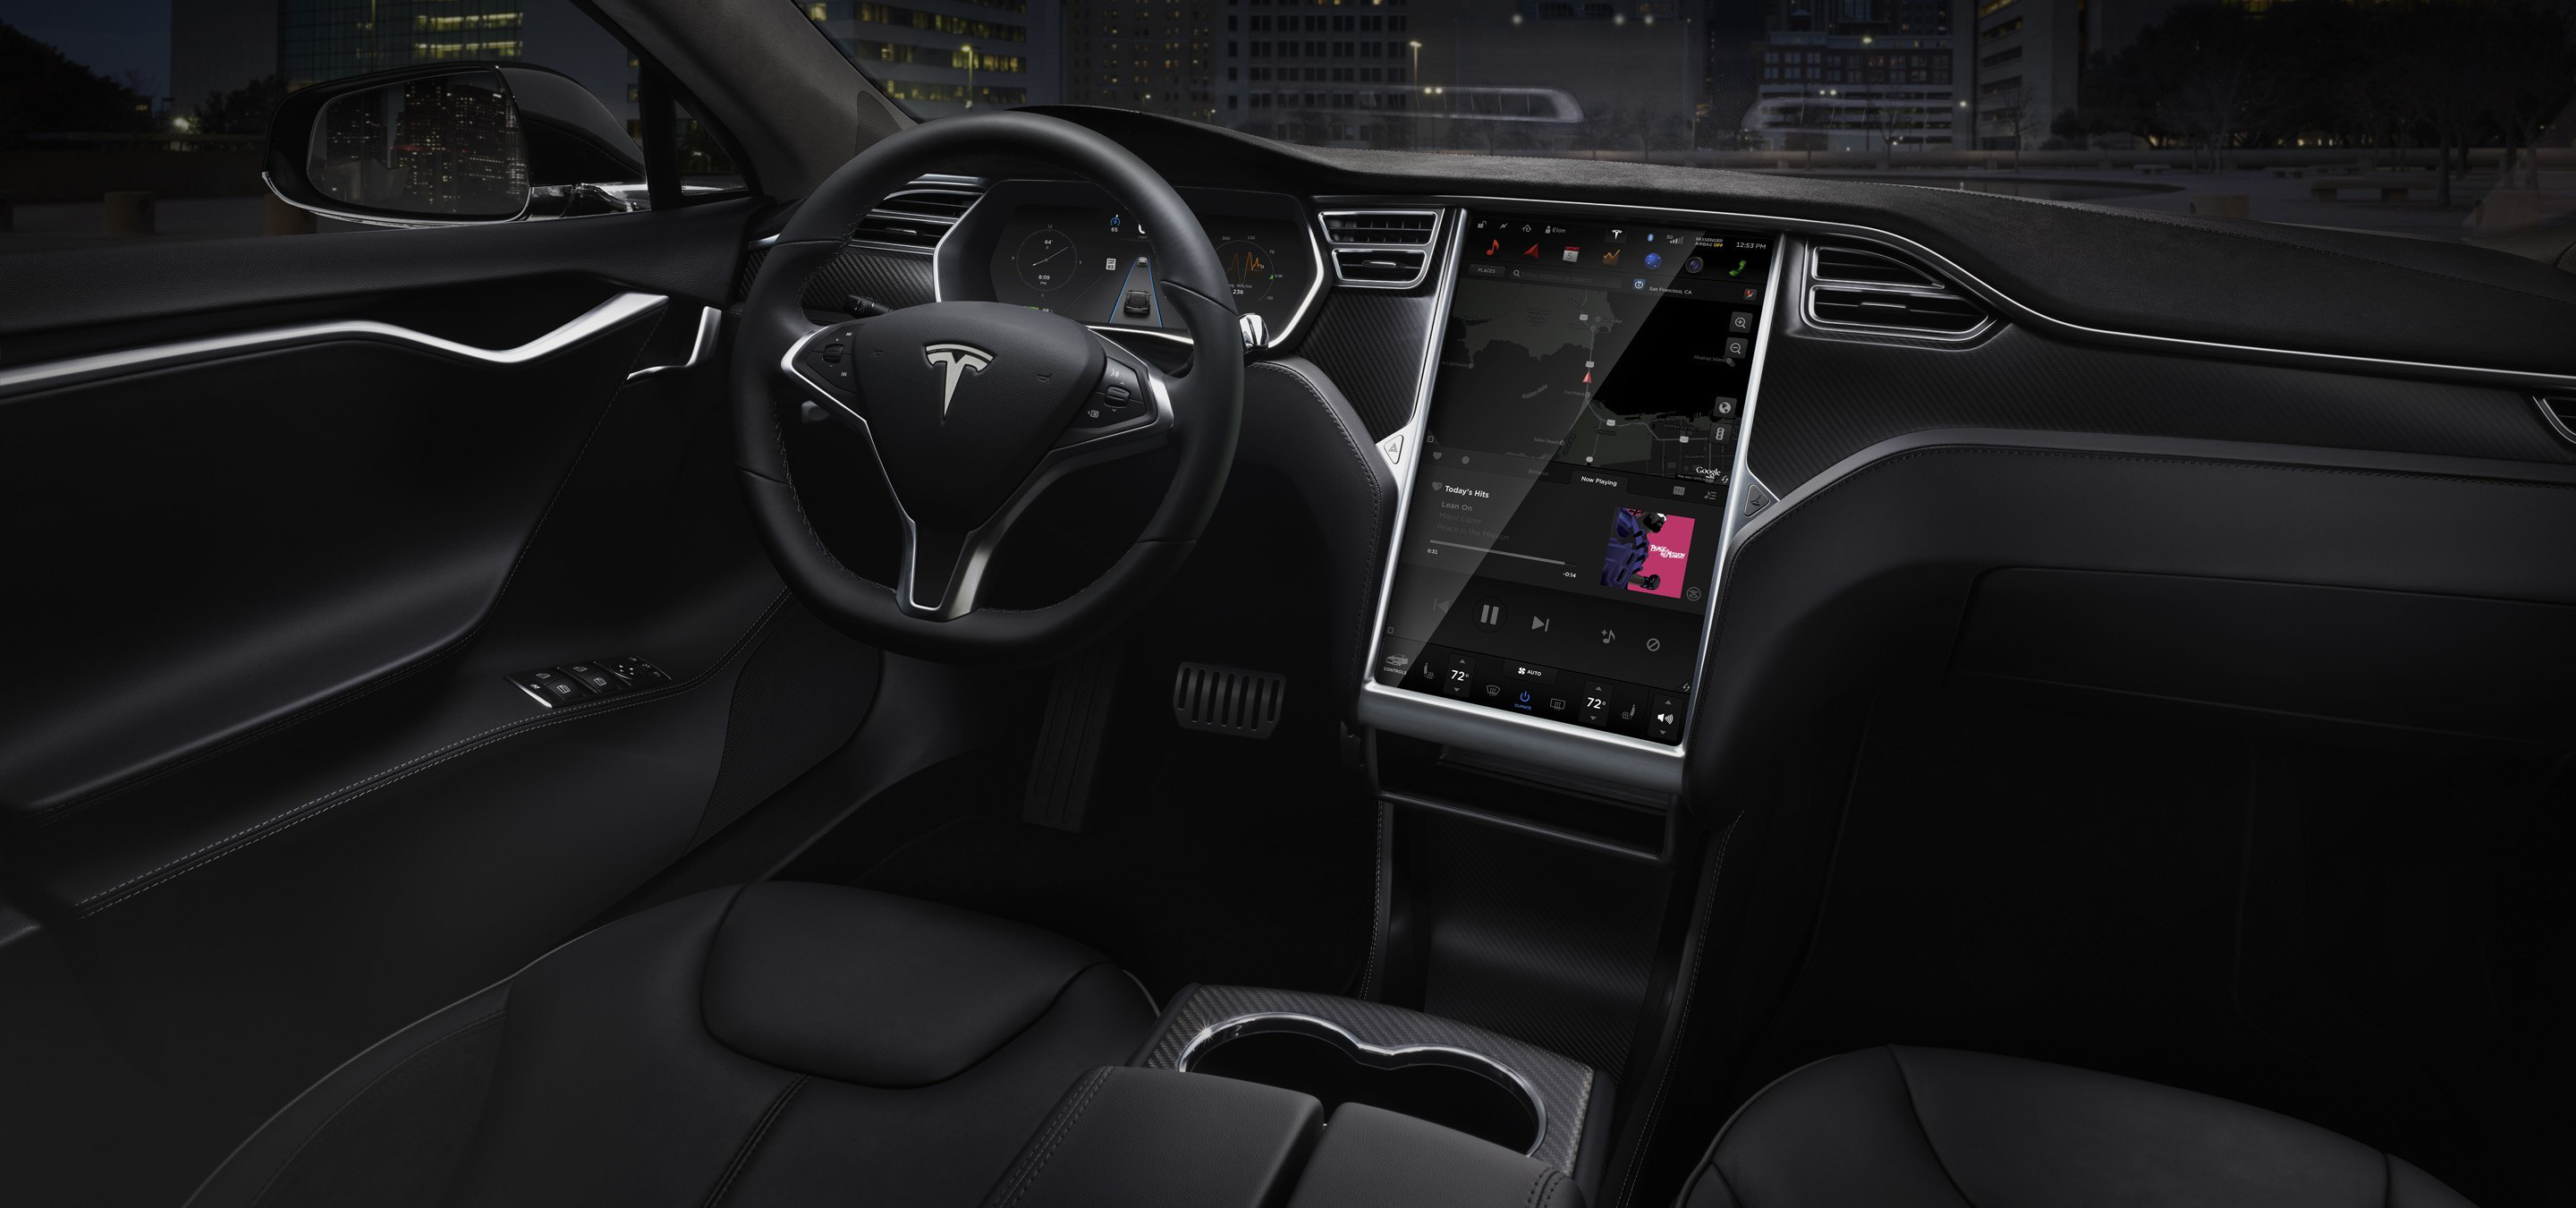 The dash of a Tesla Model S.